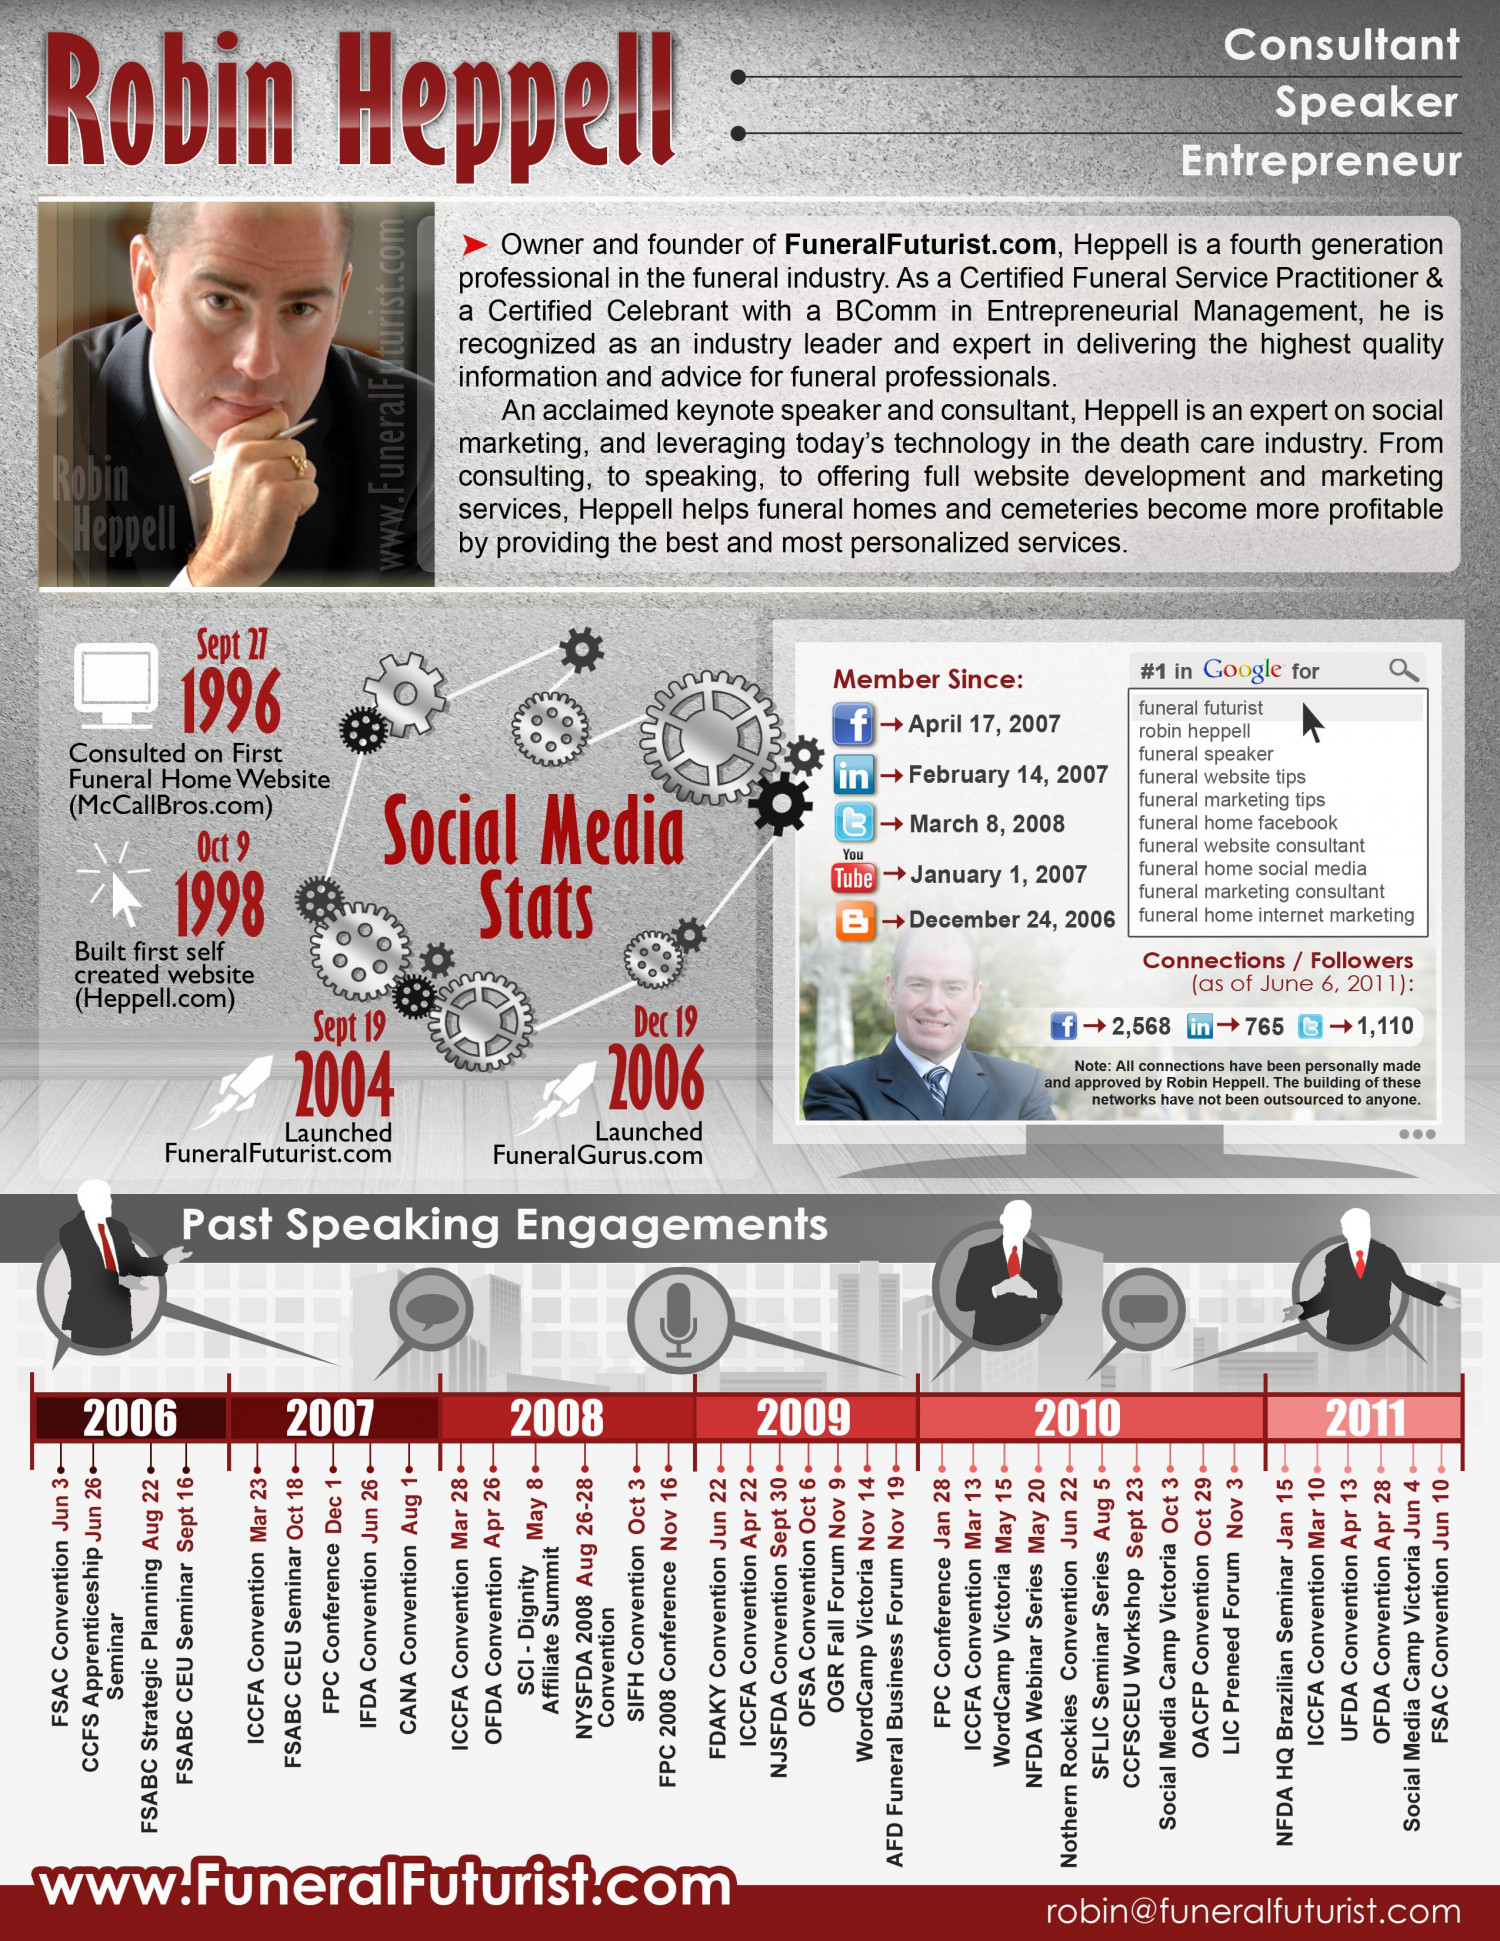 Robin Heppell - Funeral Industry Online Marketing Consultant  Infographic